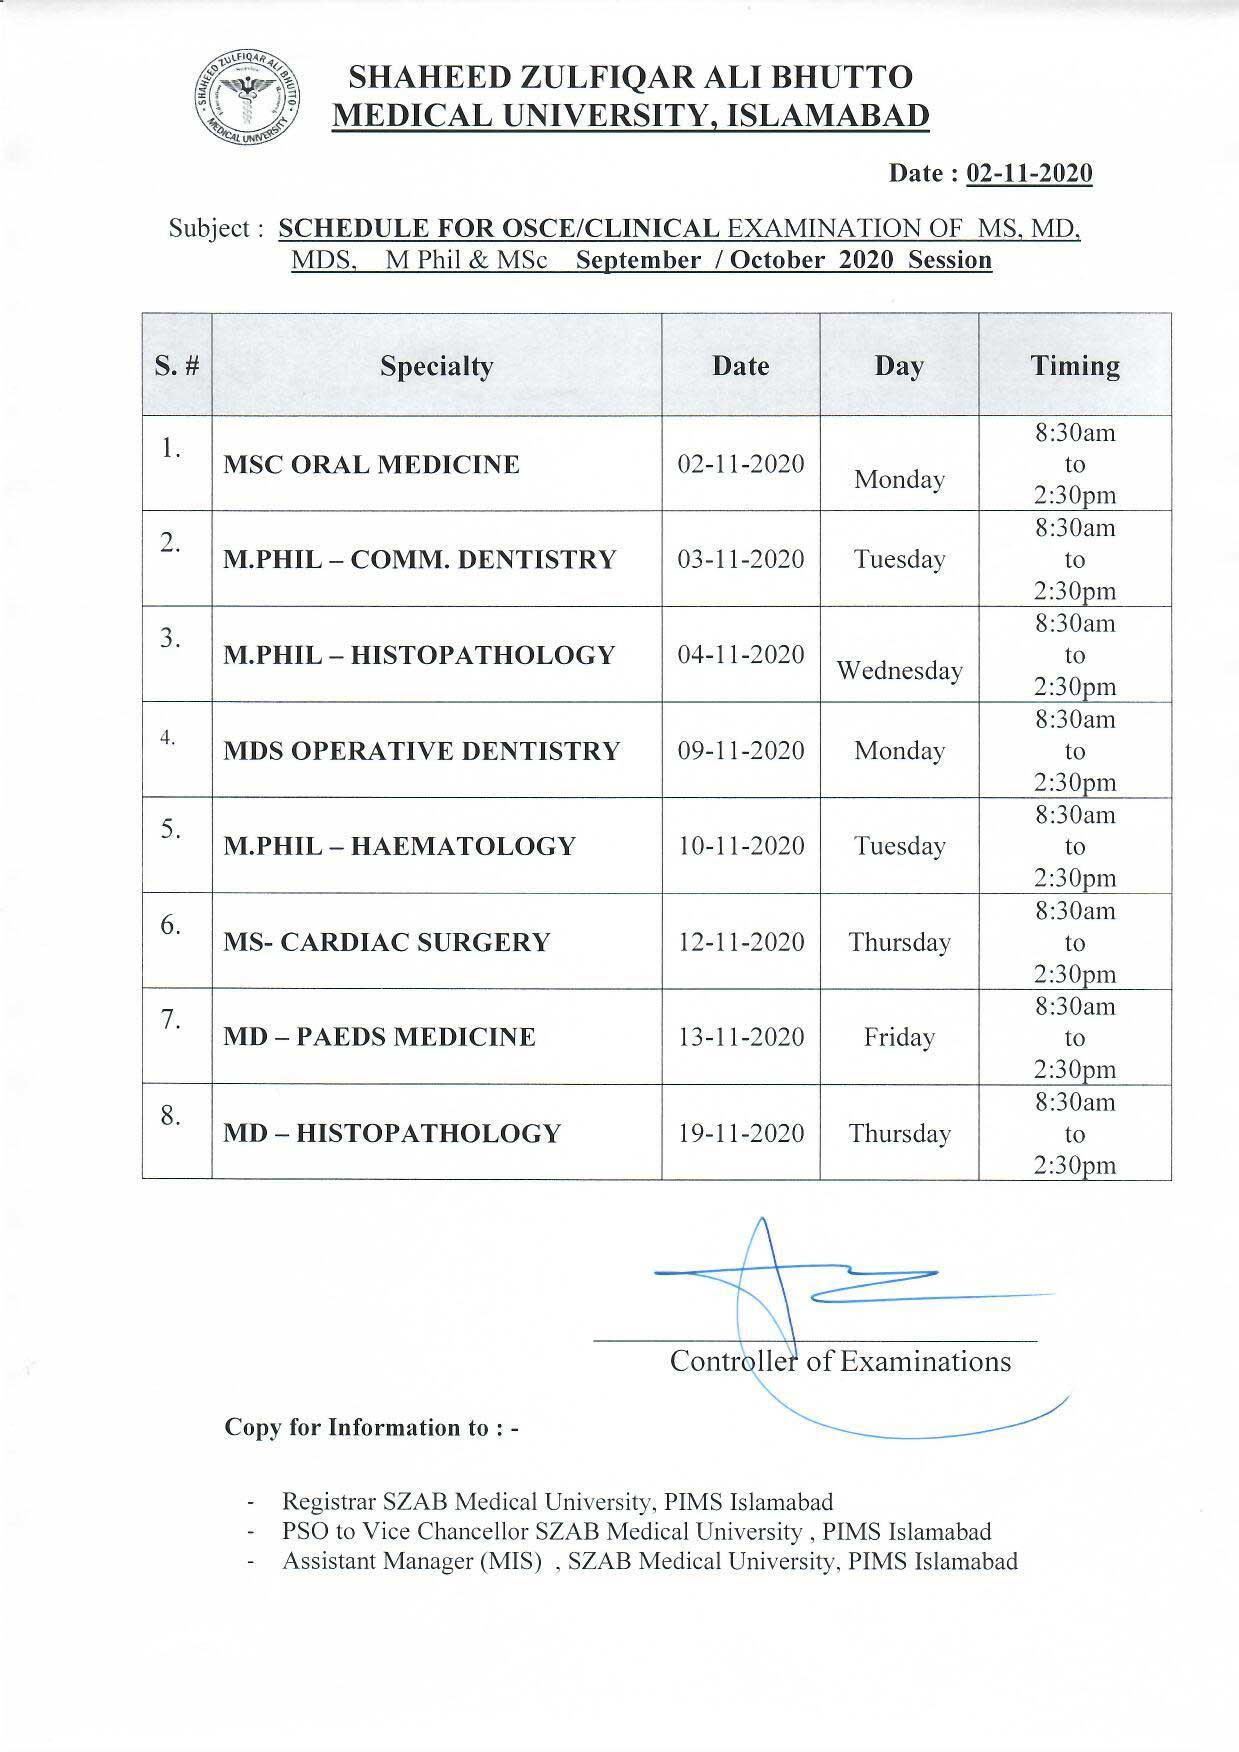 Revised schedule of Clinical Examination for MS,MD,MDS,M.Phil and MSc exam September /October 2020 session